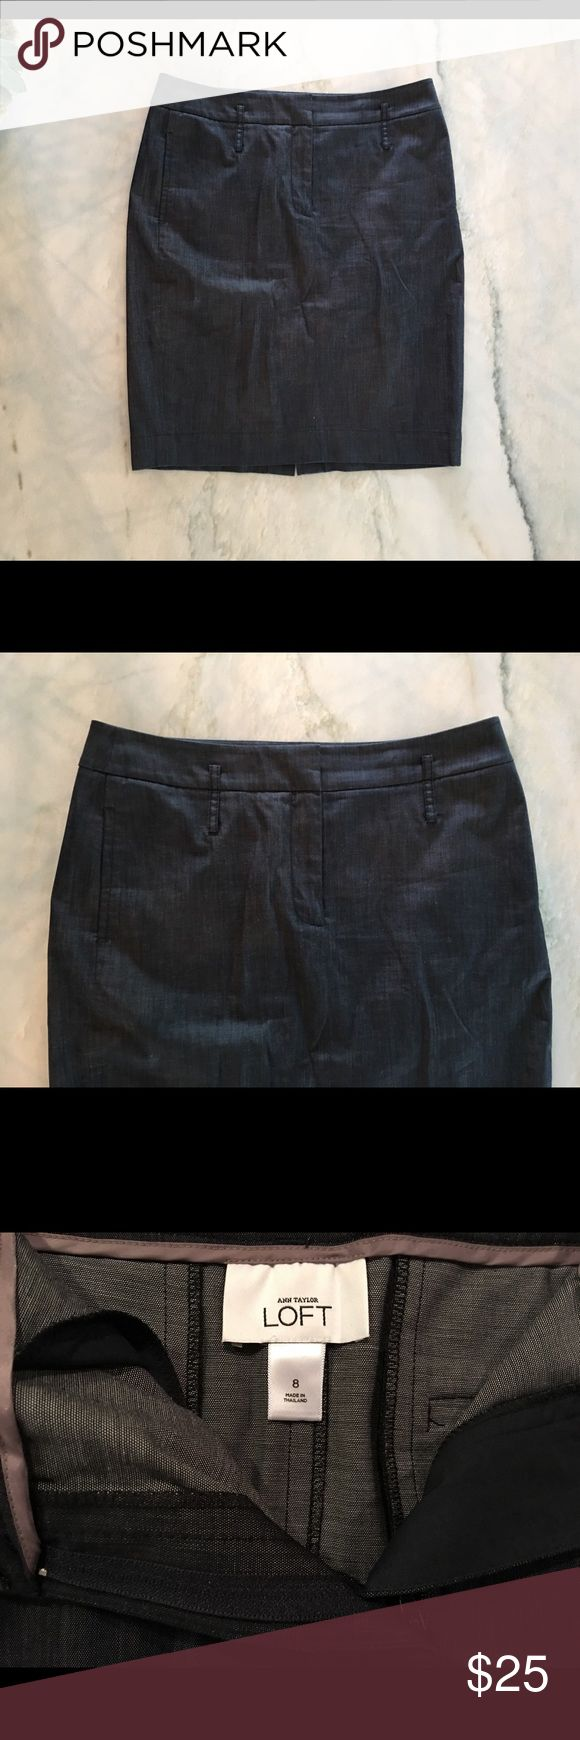 """Ann Taylor Loft Blue Jean Skirt This skirt is in brand new like condition. This is an effortlessly cool dark wash blue jean skirt.  Front (hidden) Zip, side pockets, 2 back pockets and belt loops. The waist band is 2"""" wide.  Approximate Measurements 22""""L x 16""""W x 17.5""""Hips Ann Taylor Skirts"""